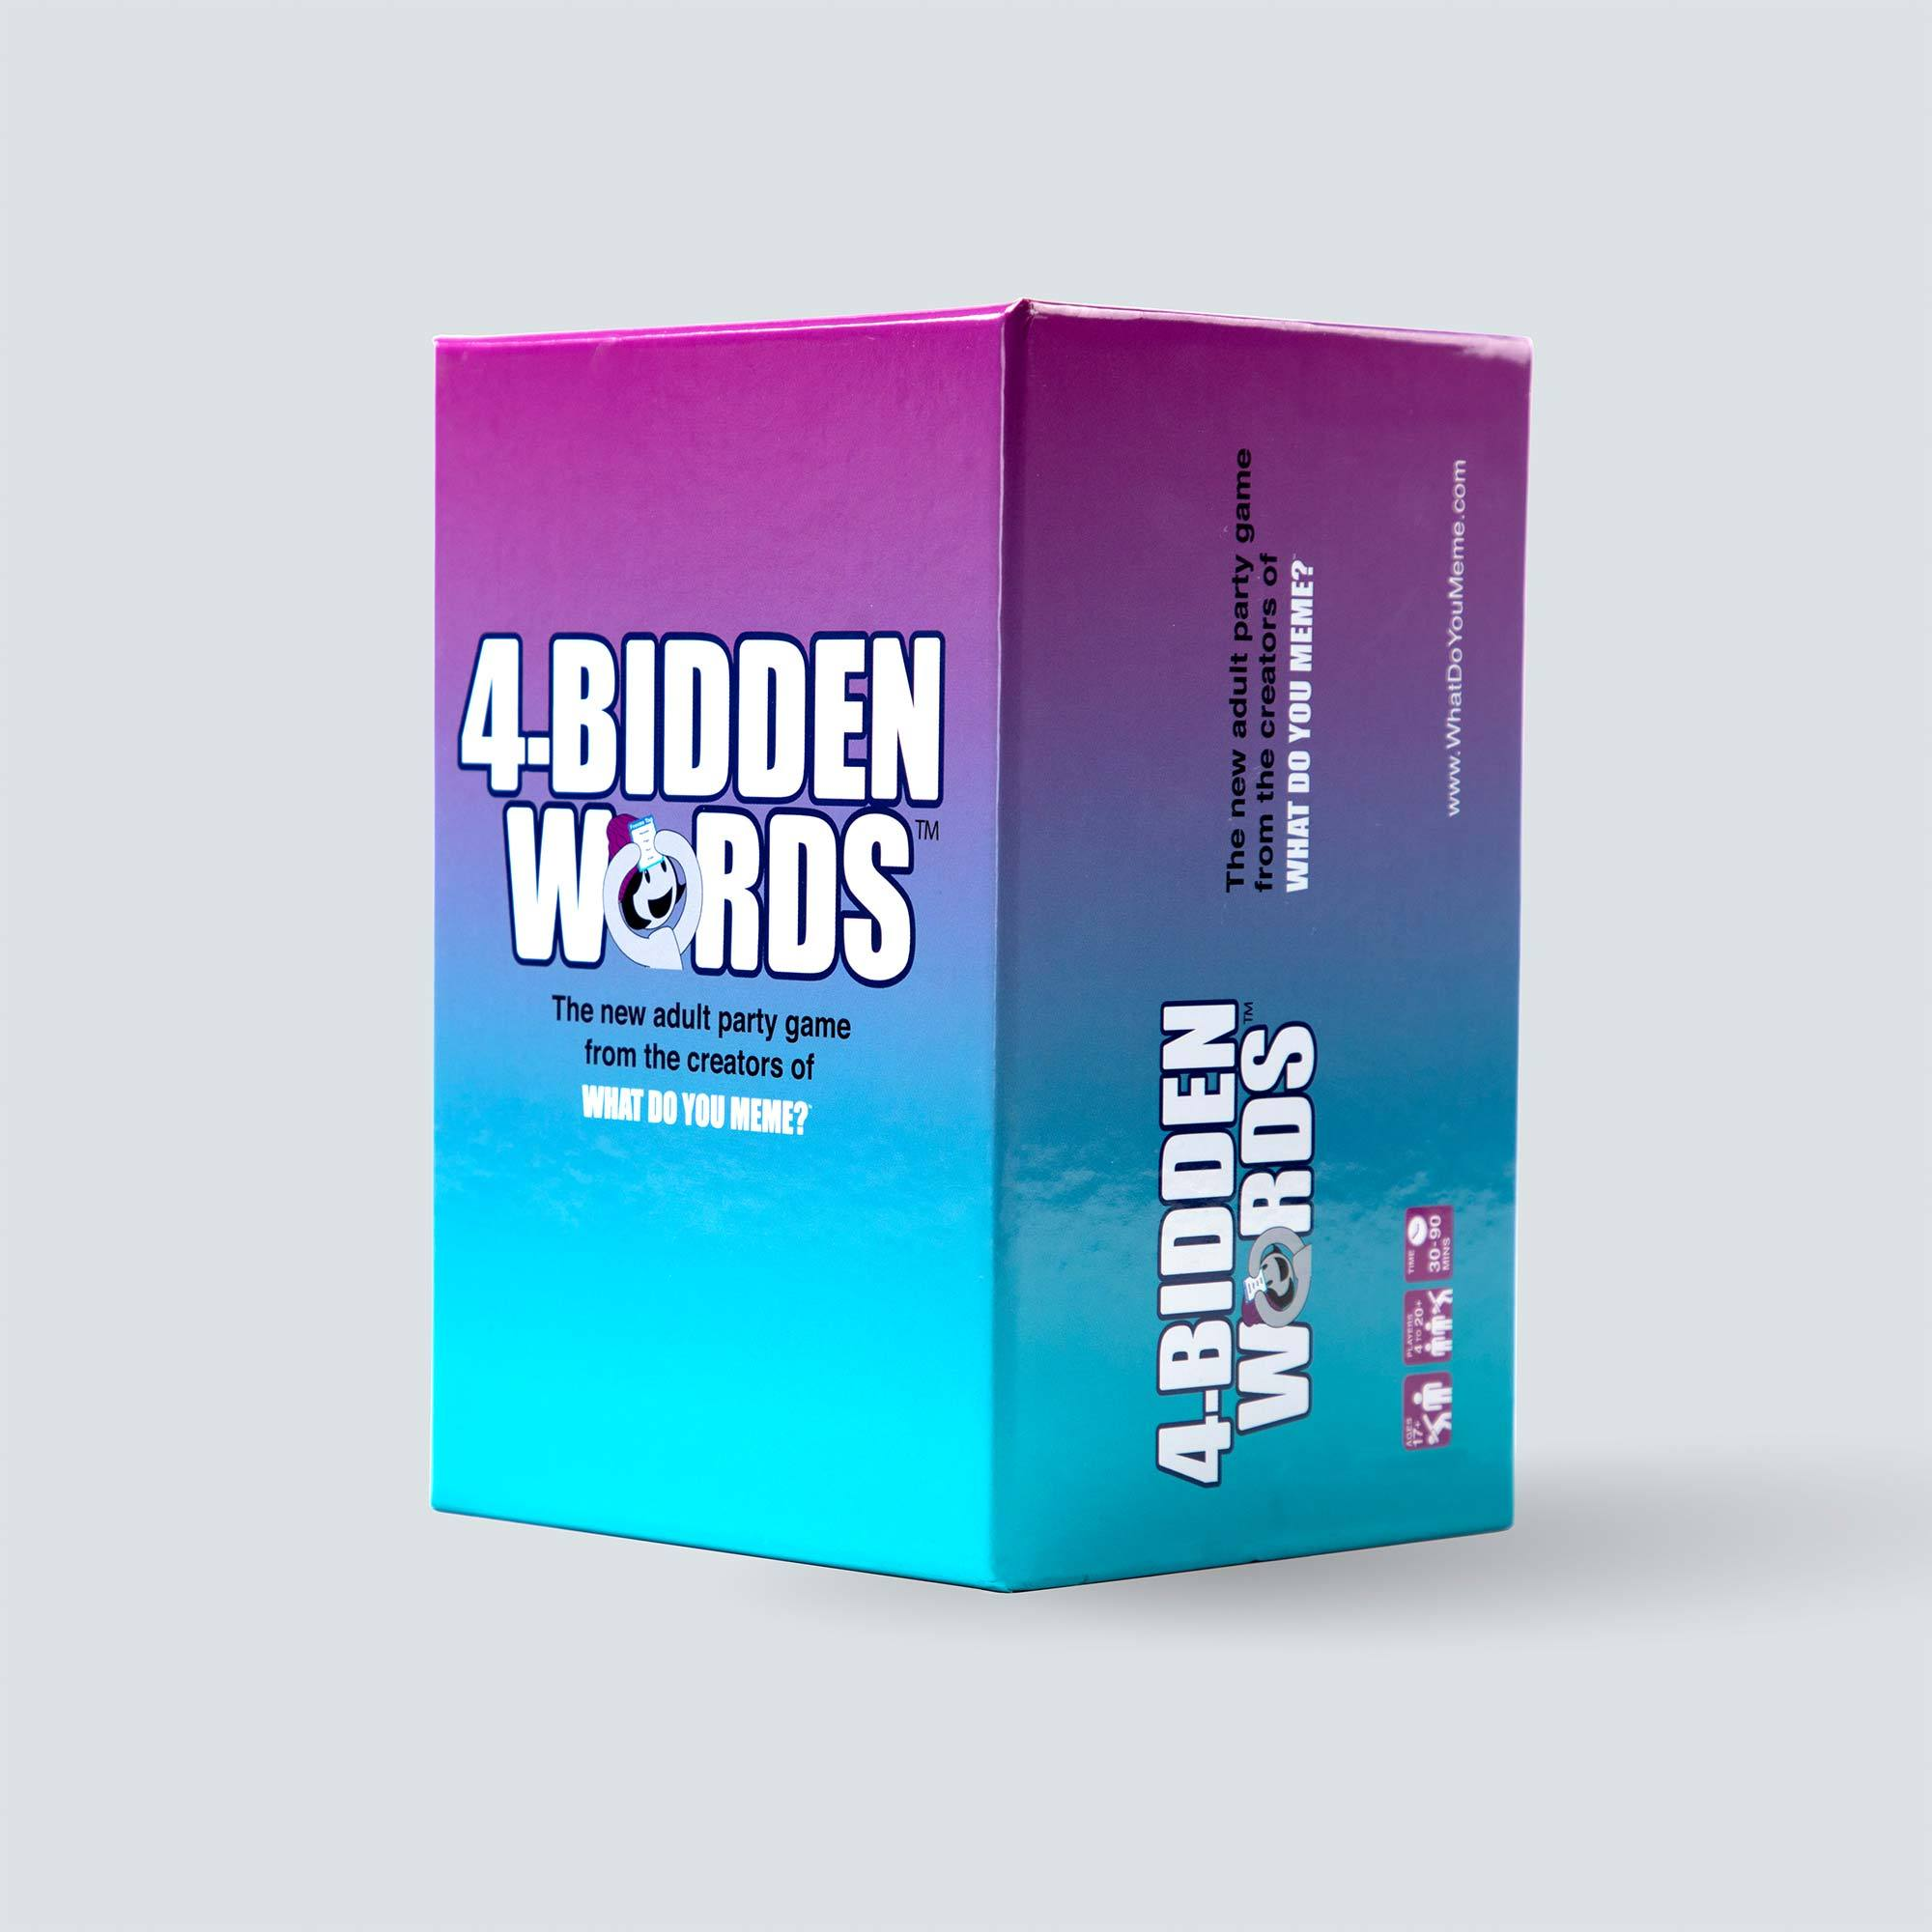 4-Bidden Words - Adult Party Game by What Do You Meme™